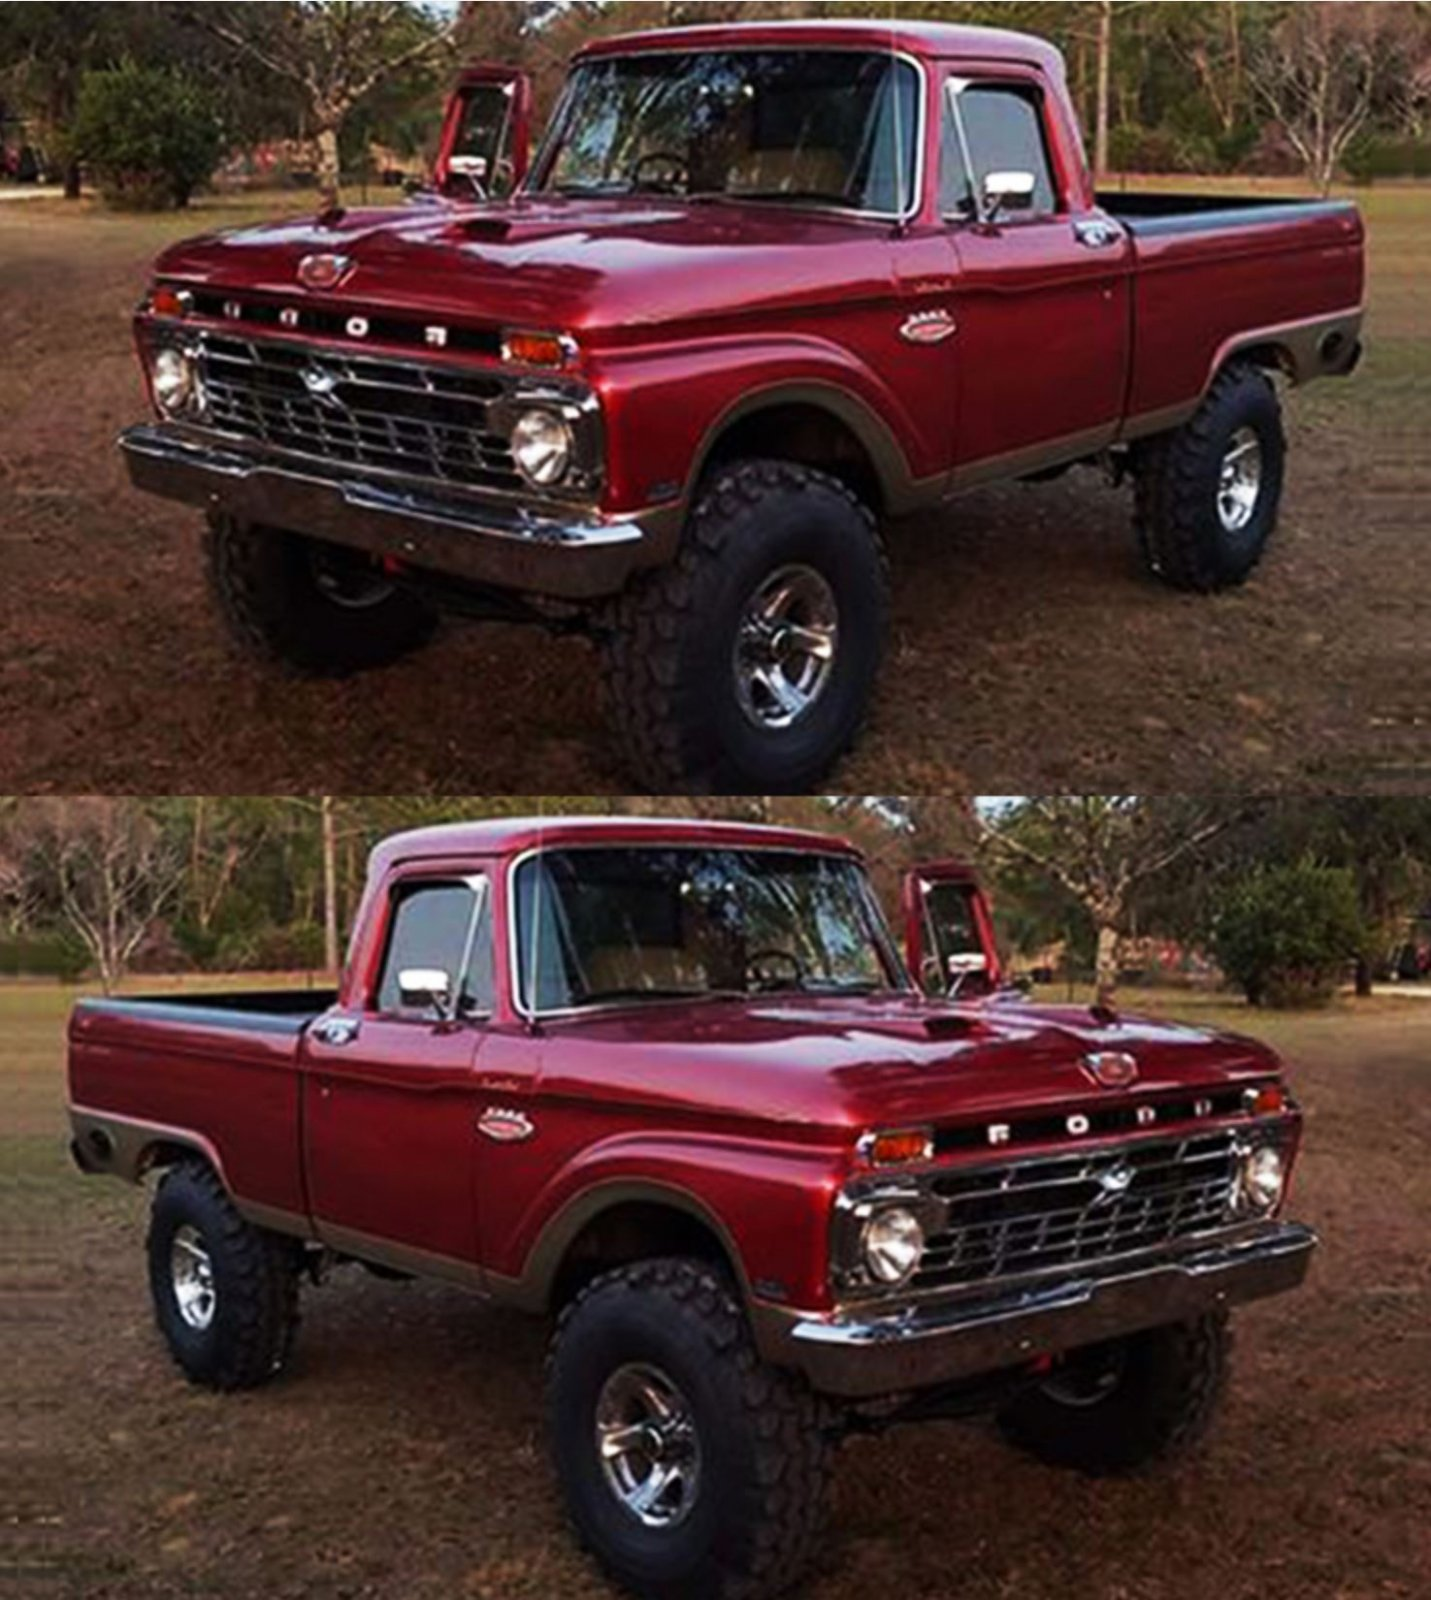 1966 Ford F100 With a 351 4x4 On Swampers 2.JPG